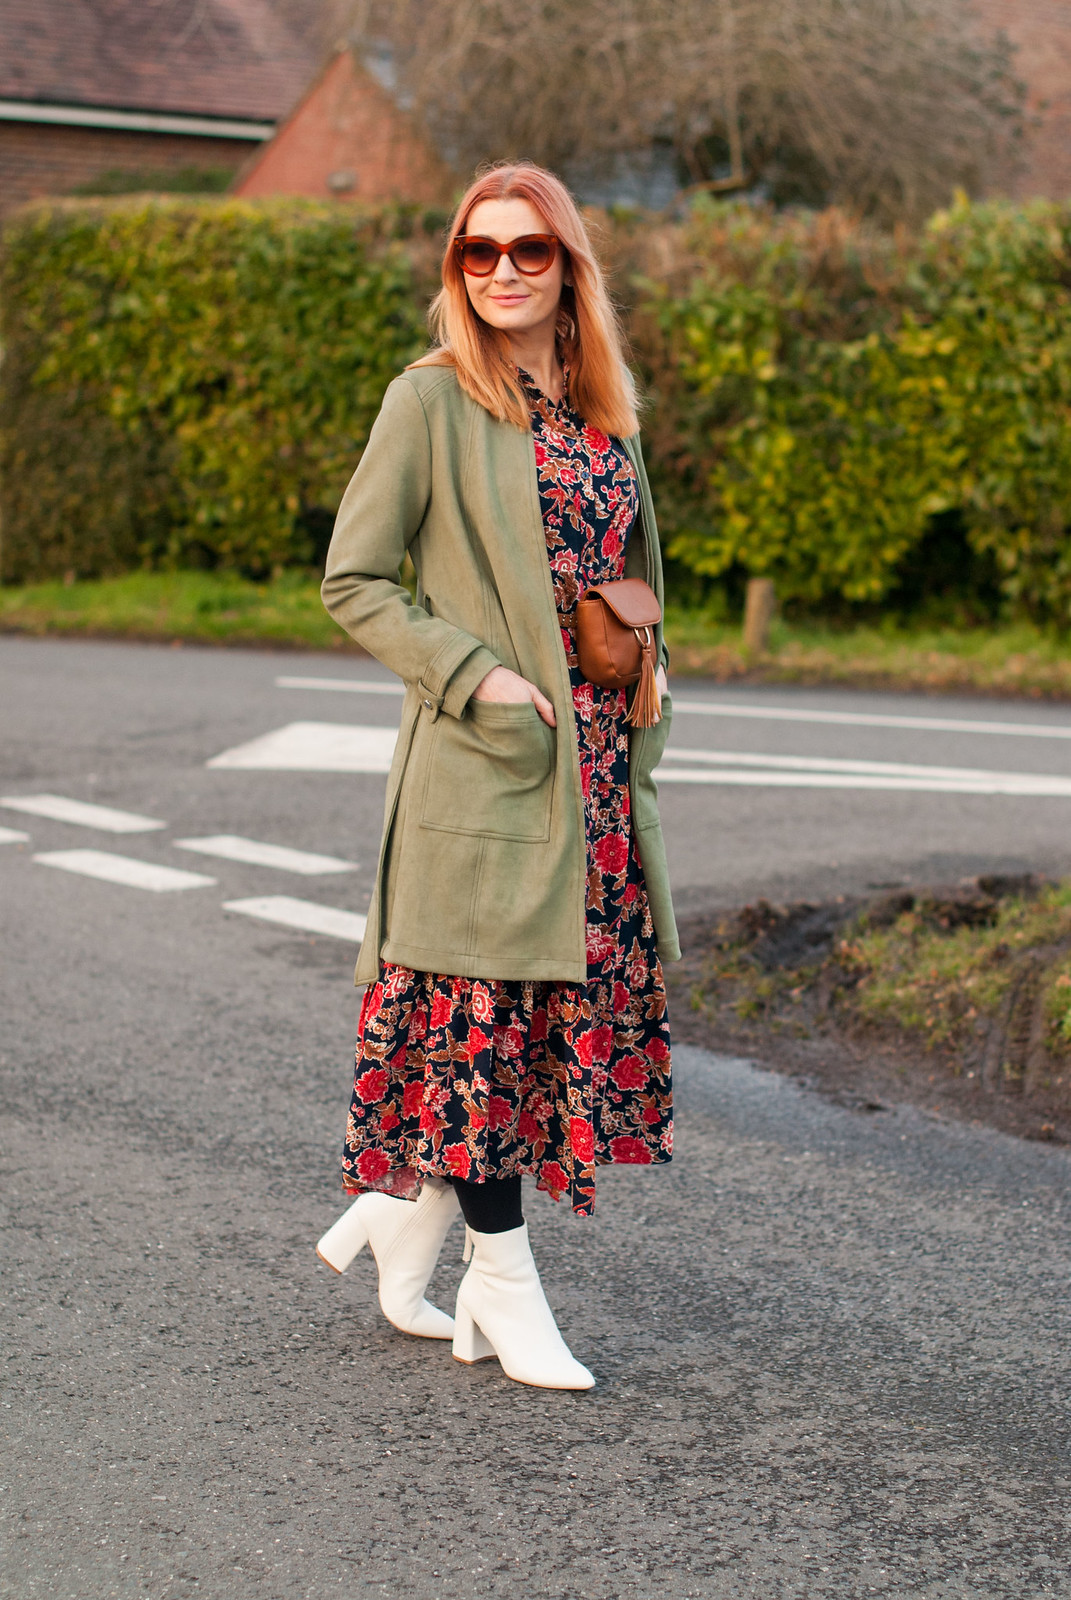 Floral maxi dress and white boots with longline khaki jacket and tan bumbag | Over 40 style fashion | Not Dressed As Lamb